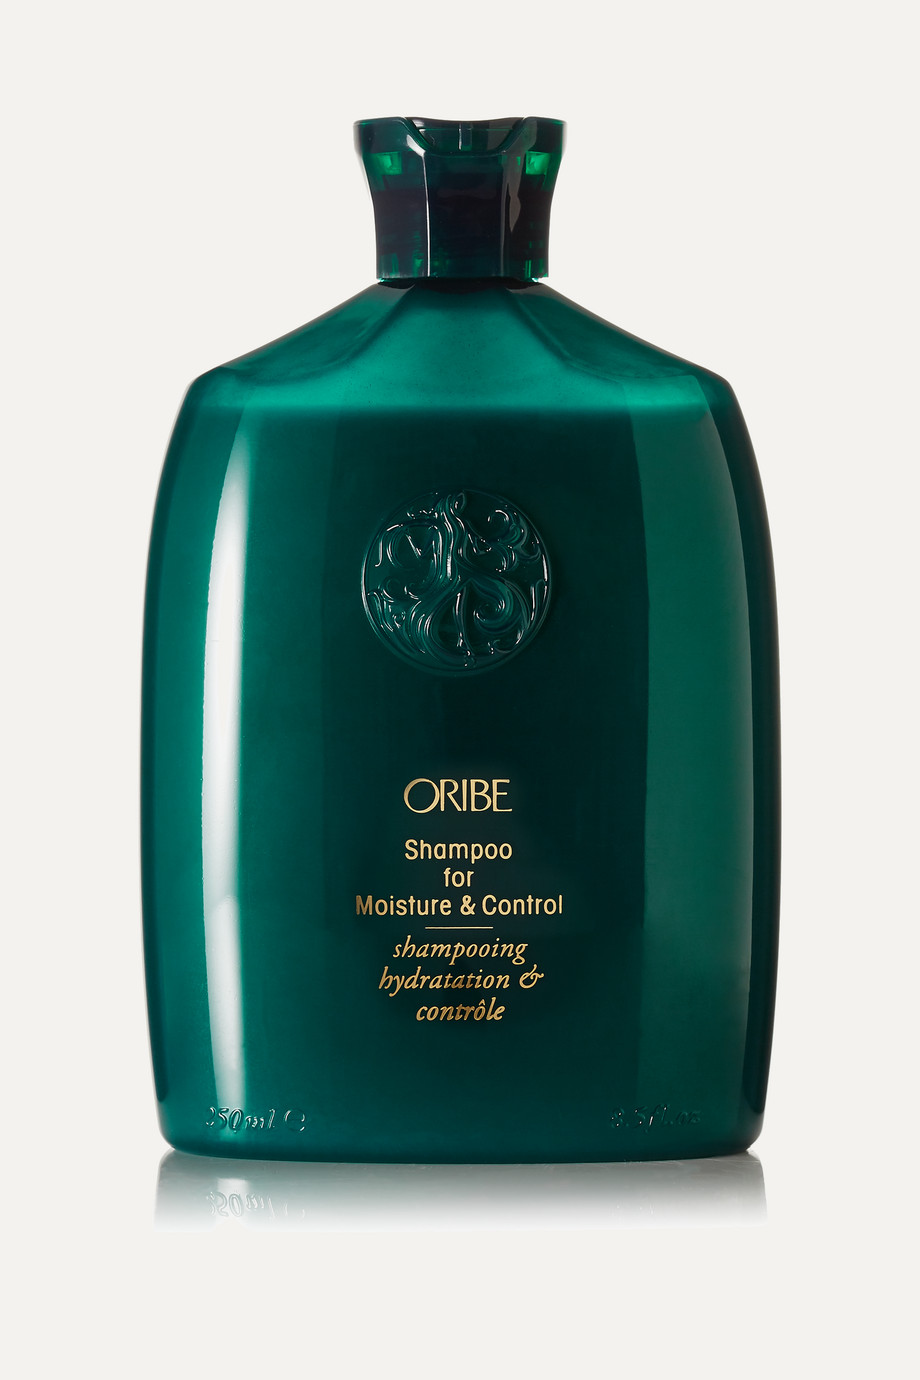 ORIBE Shampoo for Moisture and Control, 250ml